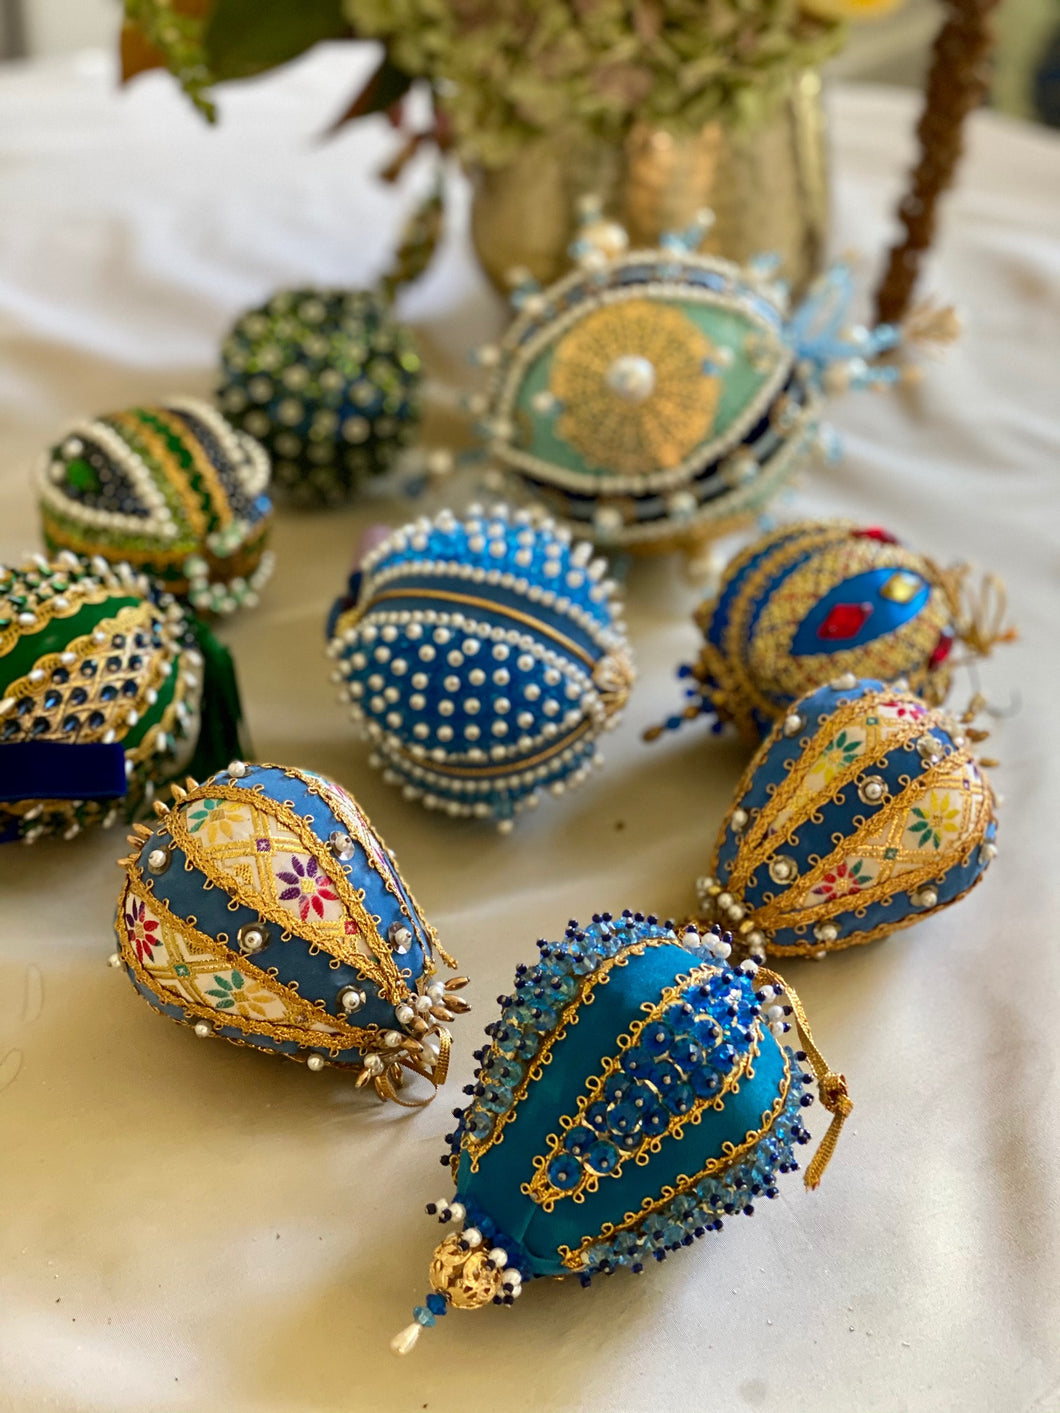 Collection of 9 Vintage Push Pin Ornaments - Blue and Gold